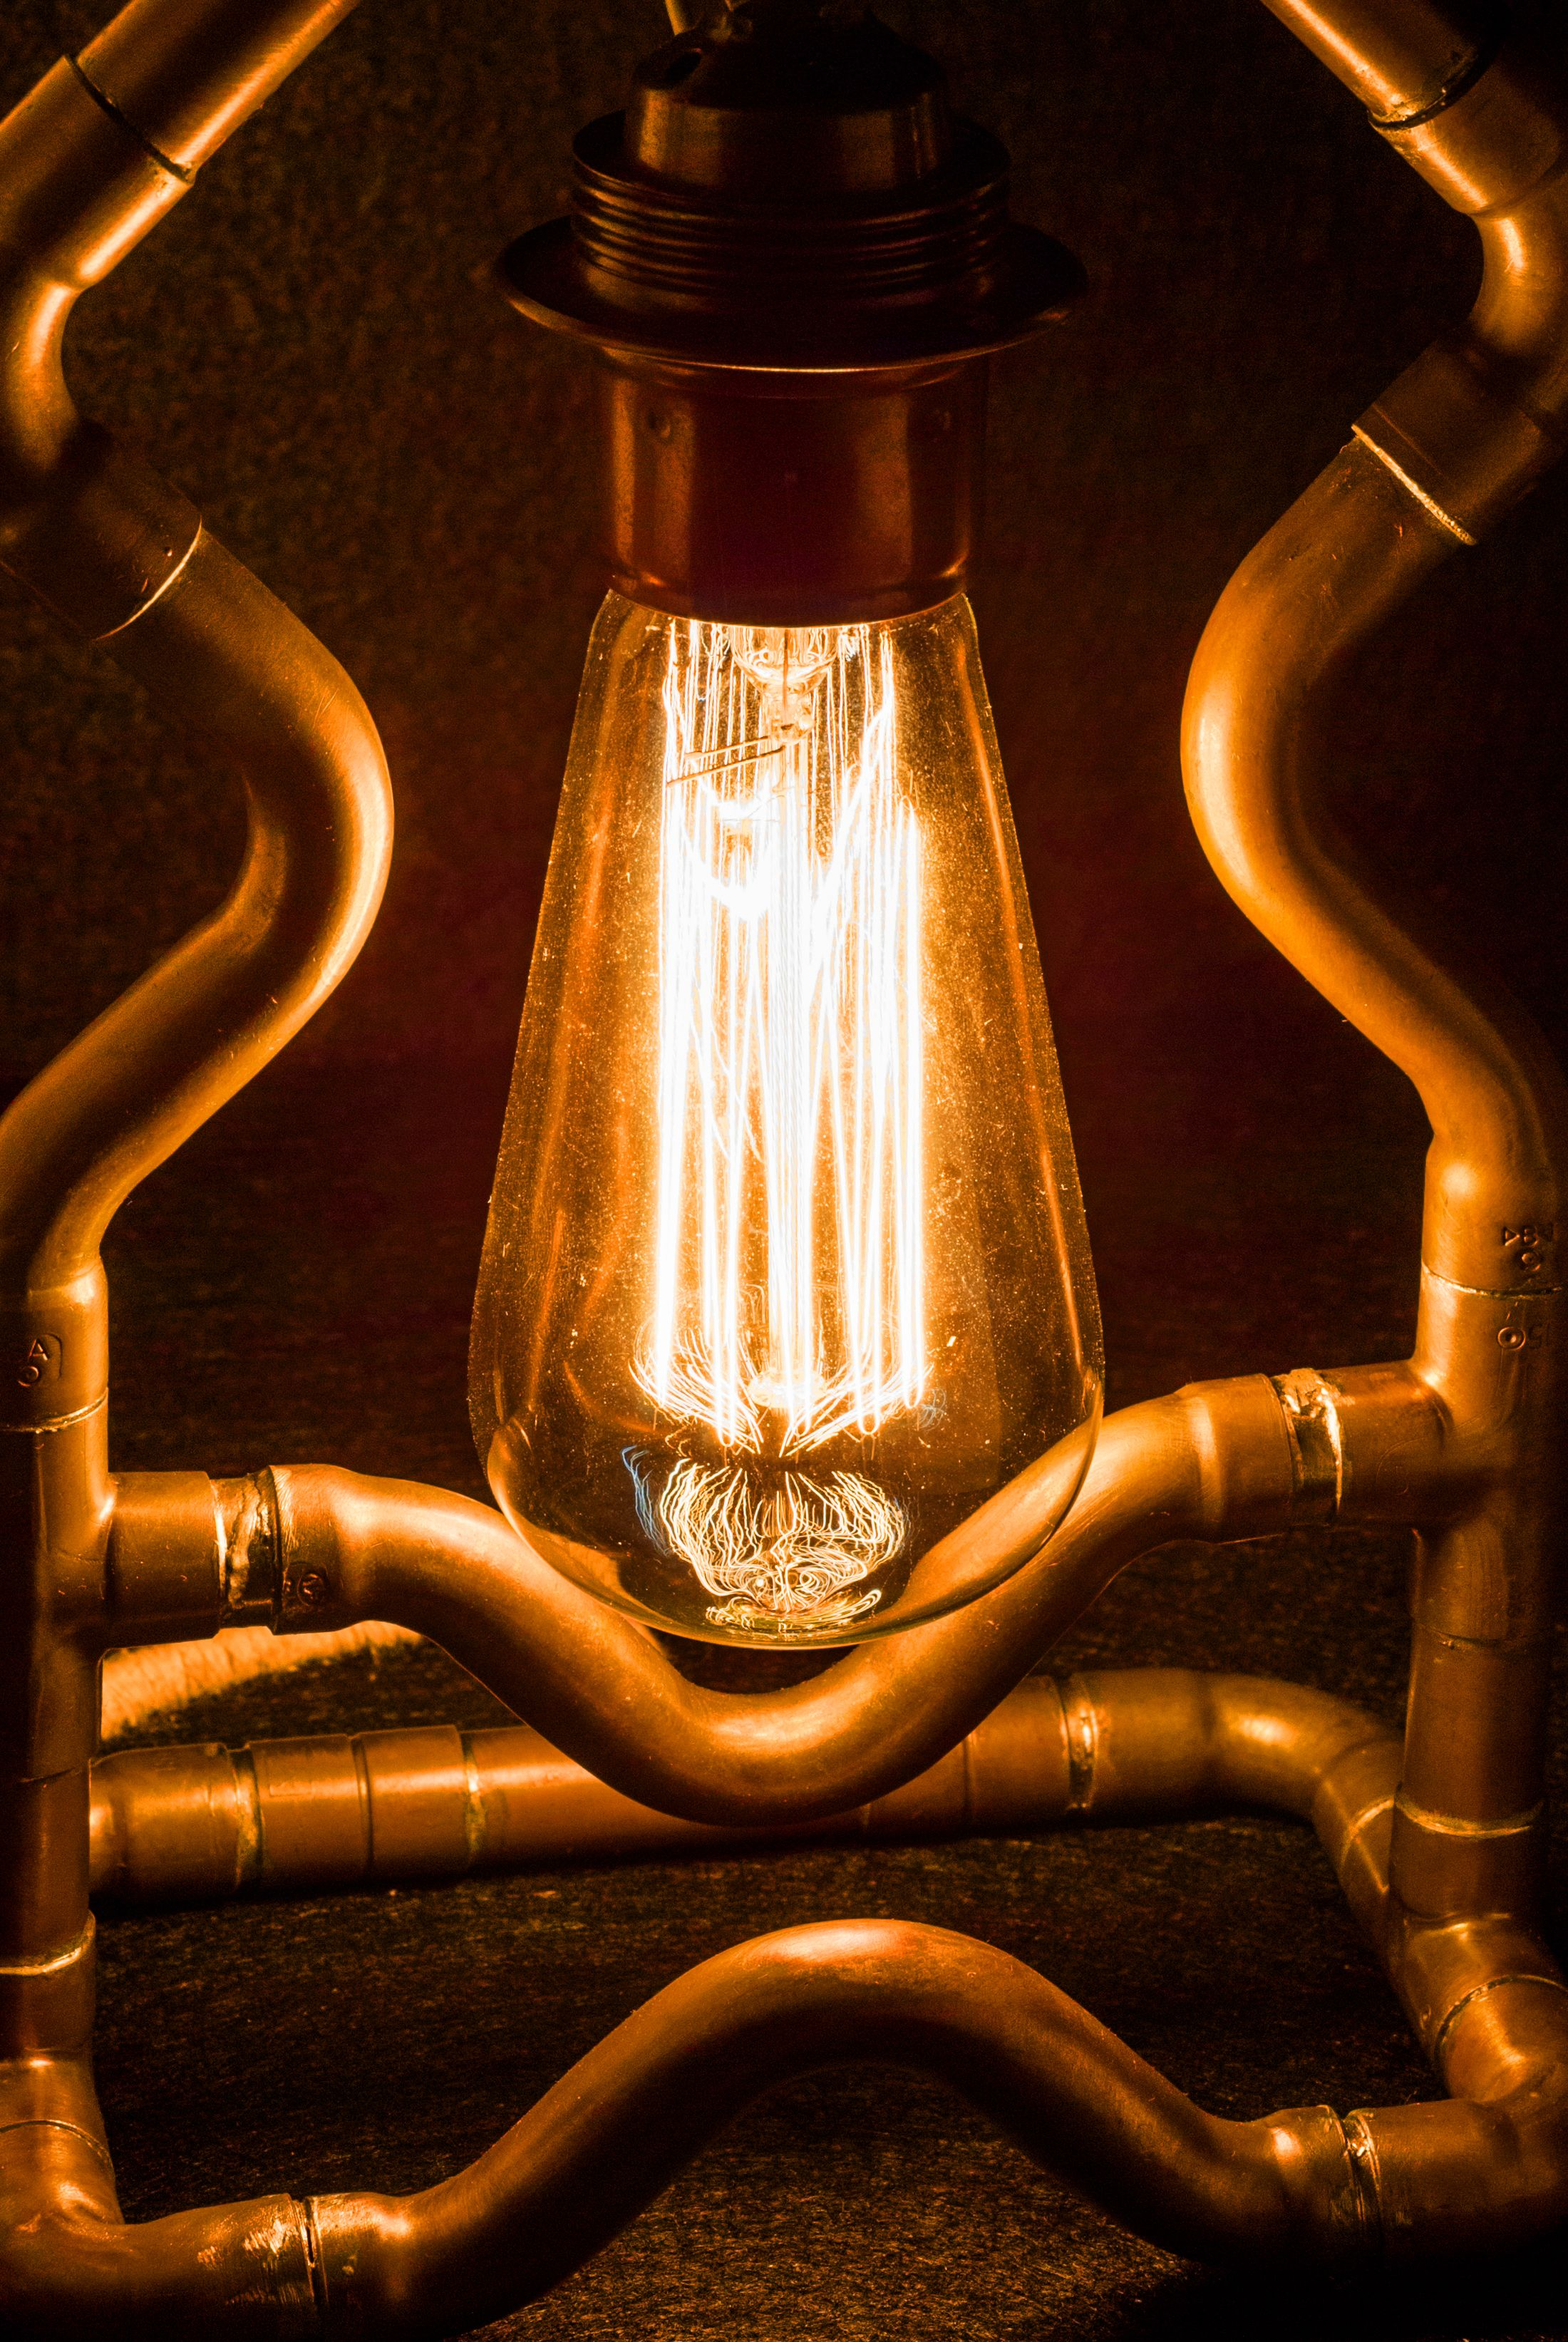 Decorative lamp made from copper pipes and Edison Light Bulb with